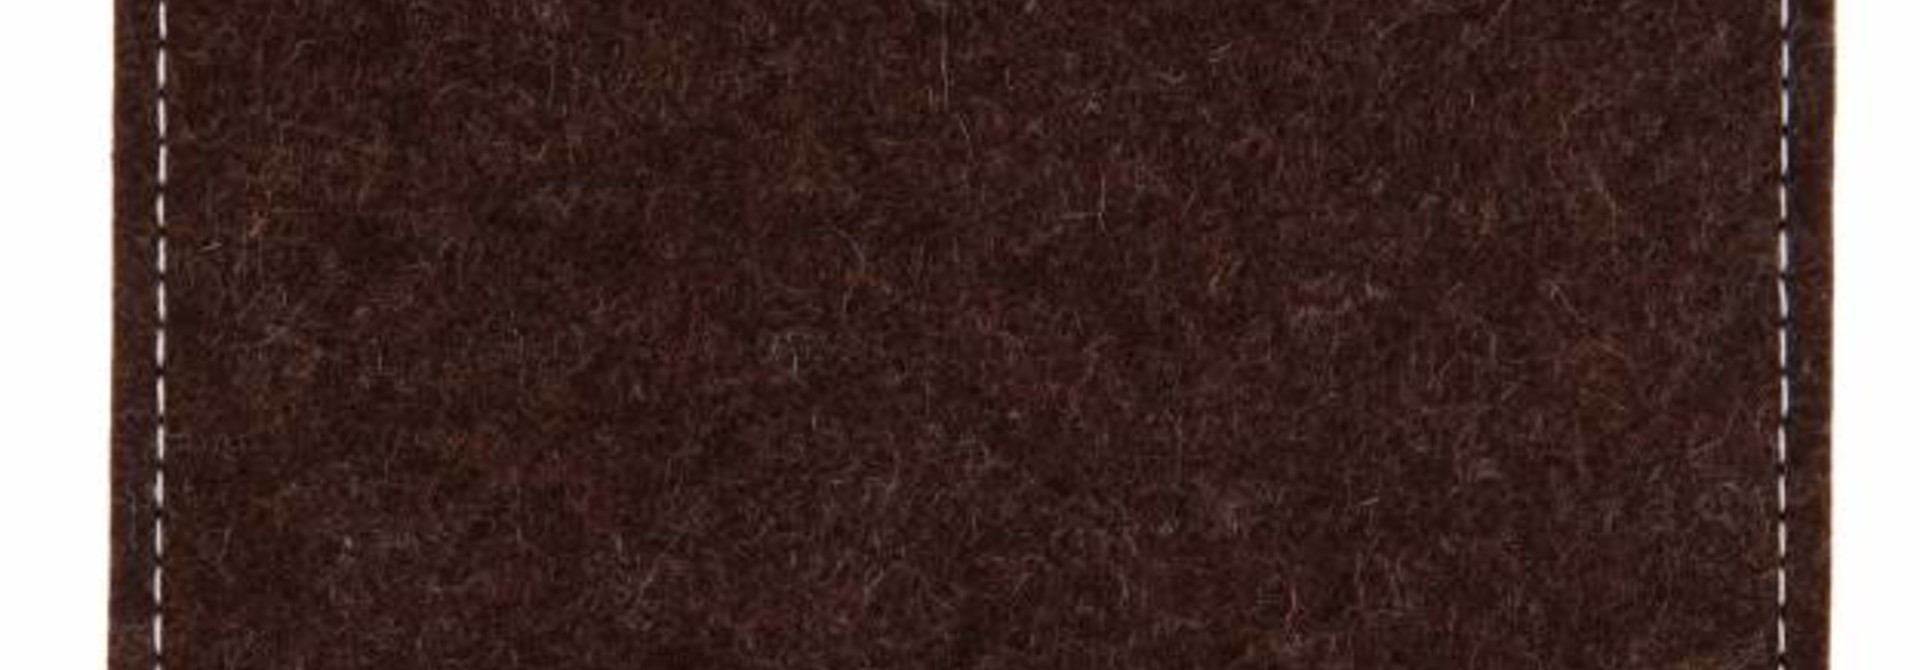 Surface Sleeve Truffle-Brown